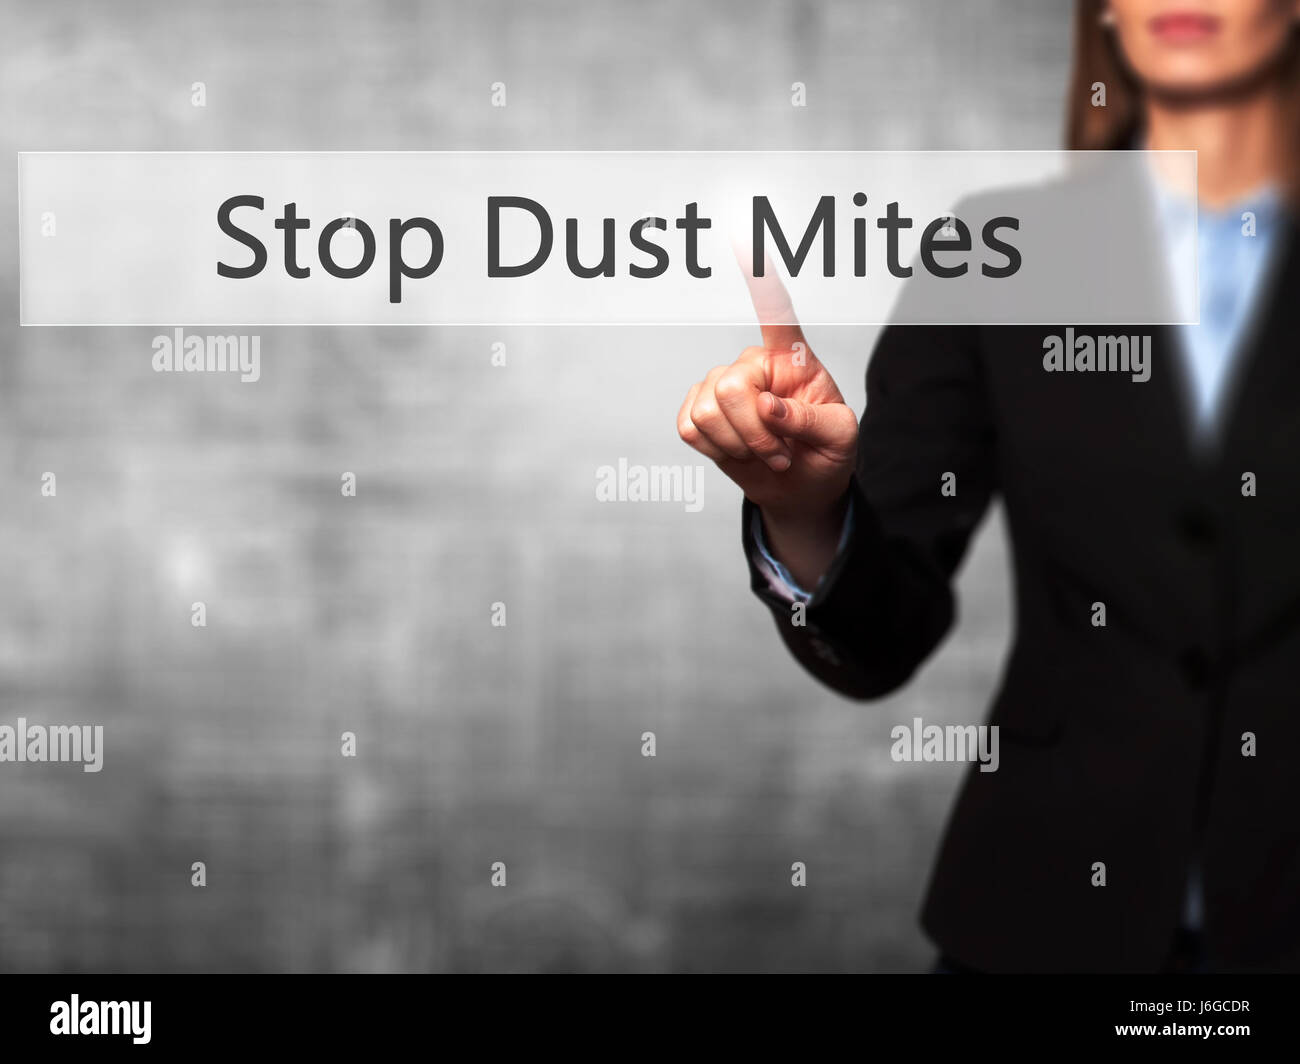 Skin Mites Stock Photos Images Alamy Human As A Touch Screen Interface Stop Dust Businesswoman Hand Pressing Button On Business Technology